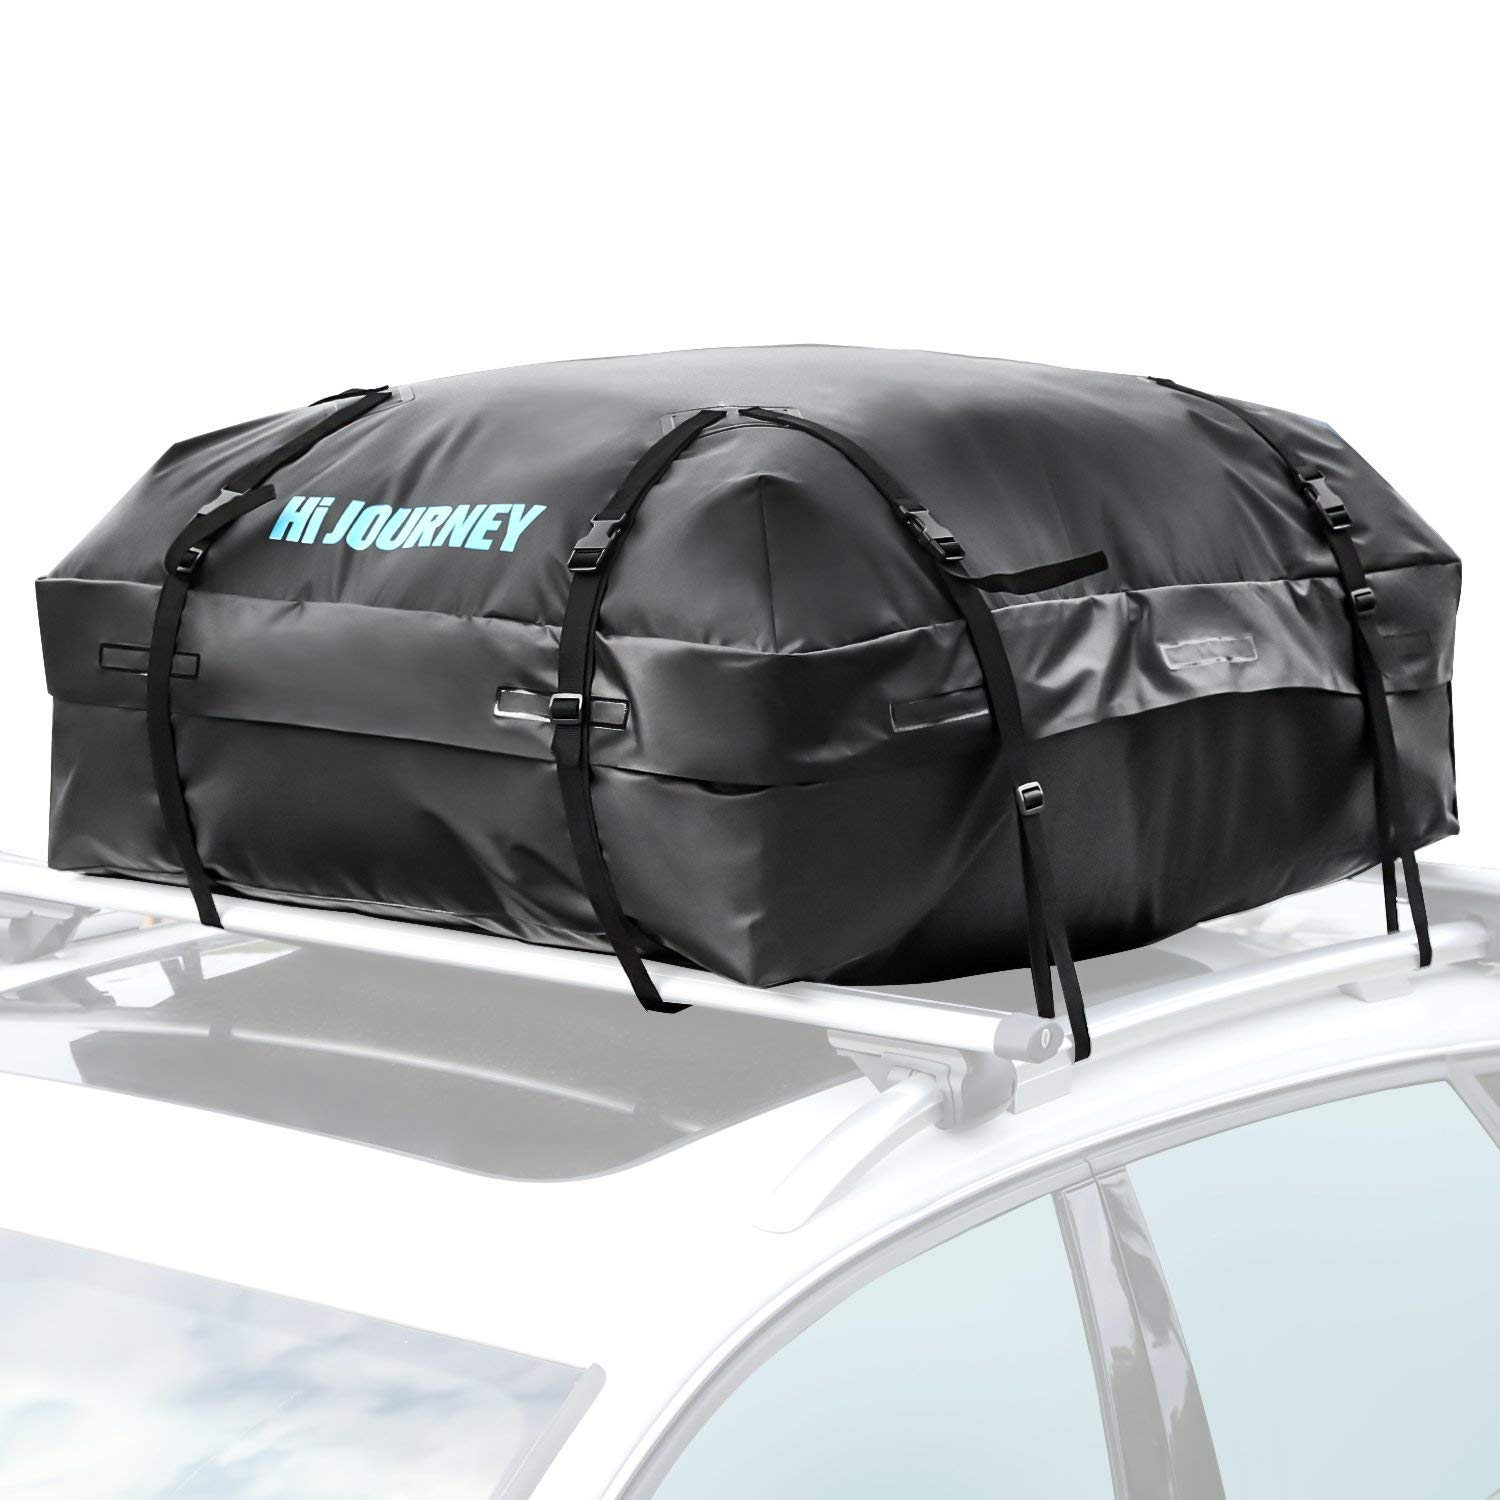 RABBITGOO Rooftop Cargo Carrier Car Roof Cargo Bag Easy to Install Straps - Waterproof Soft Shell Luggage Rack Bag on Car Topper 15 Cubic Feet